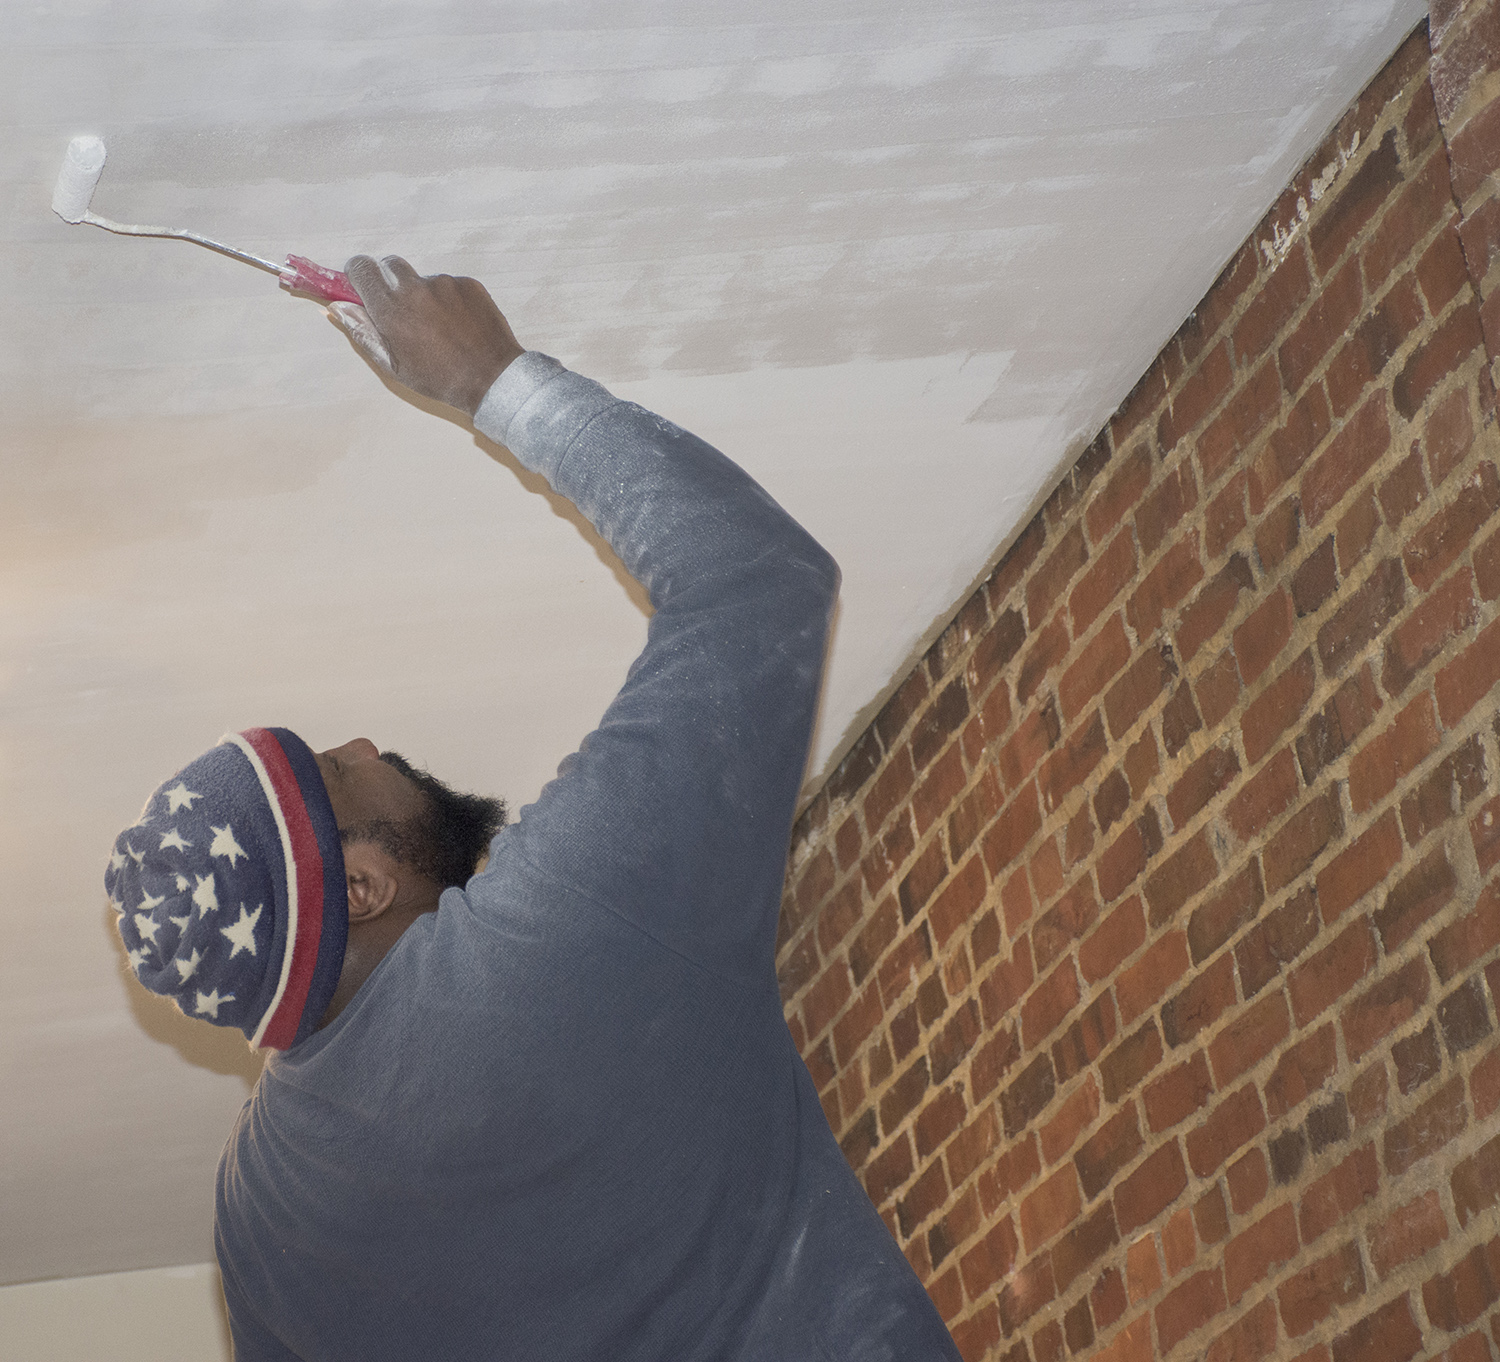 Robert Lee Jr. paints a ceiling on the second floor of the building at 1100 Hollins Street